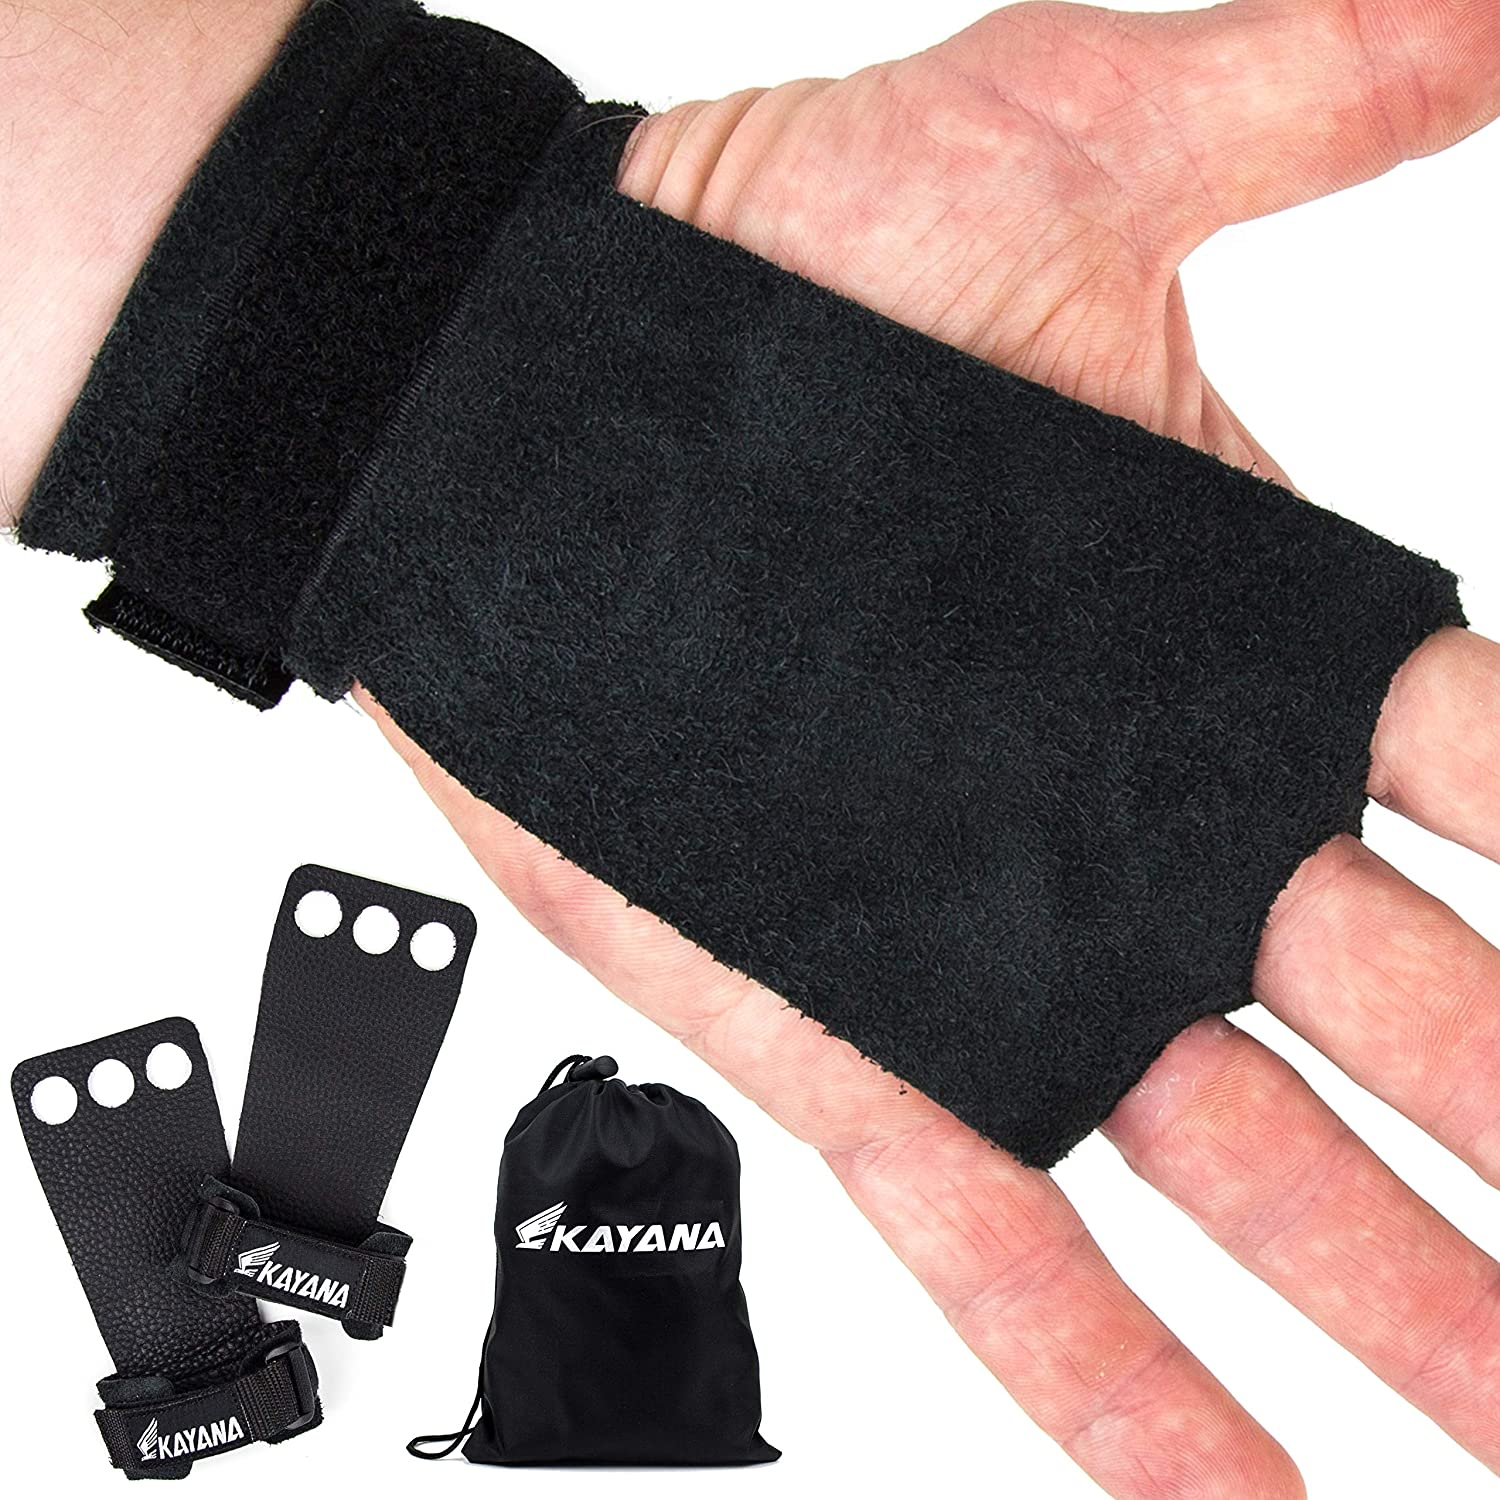 KAYANA Easy-to-use 3 Hole Leather Gymnastics Hand Palm Protection an Grips Large special price -